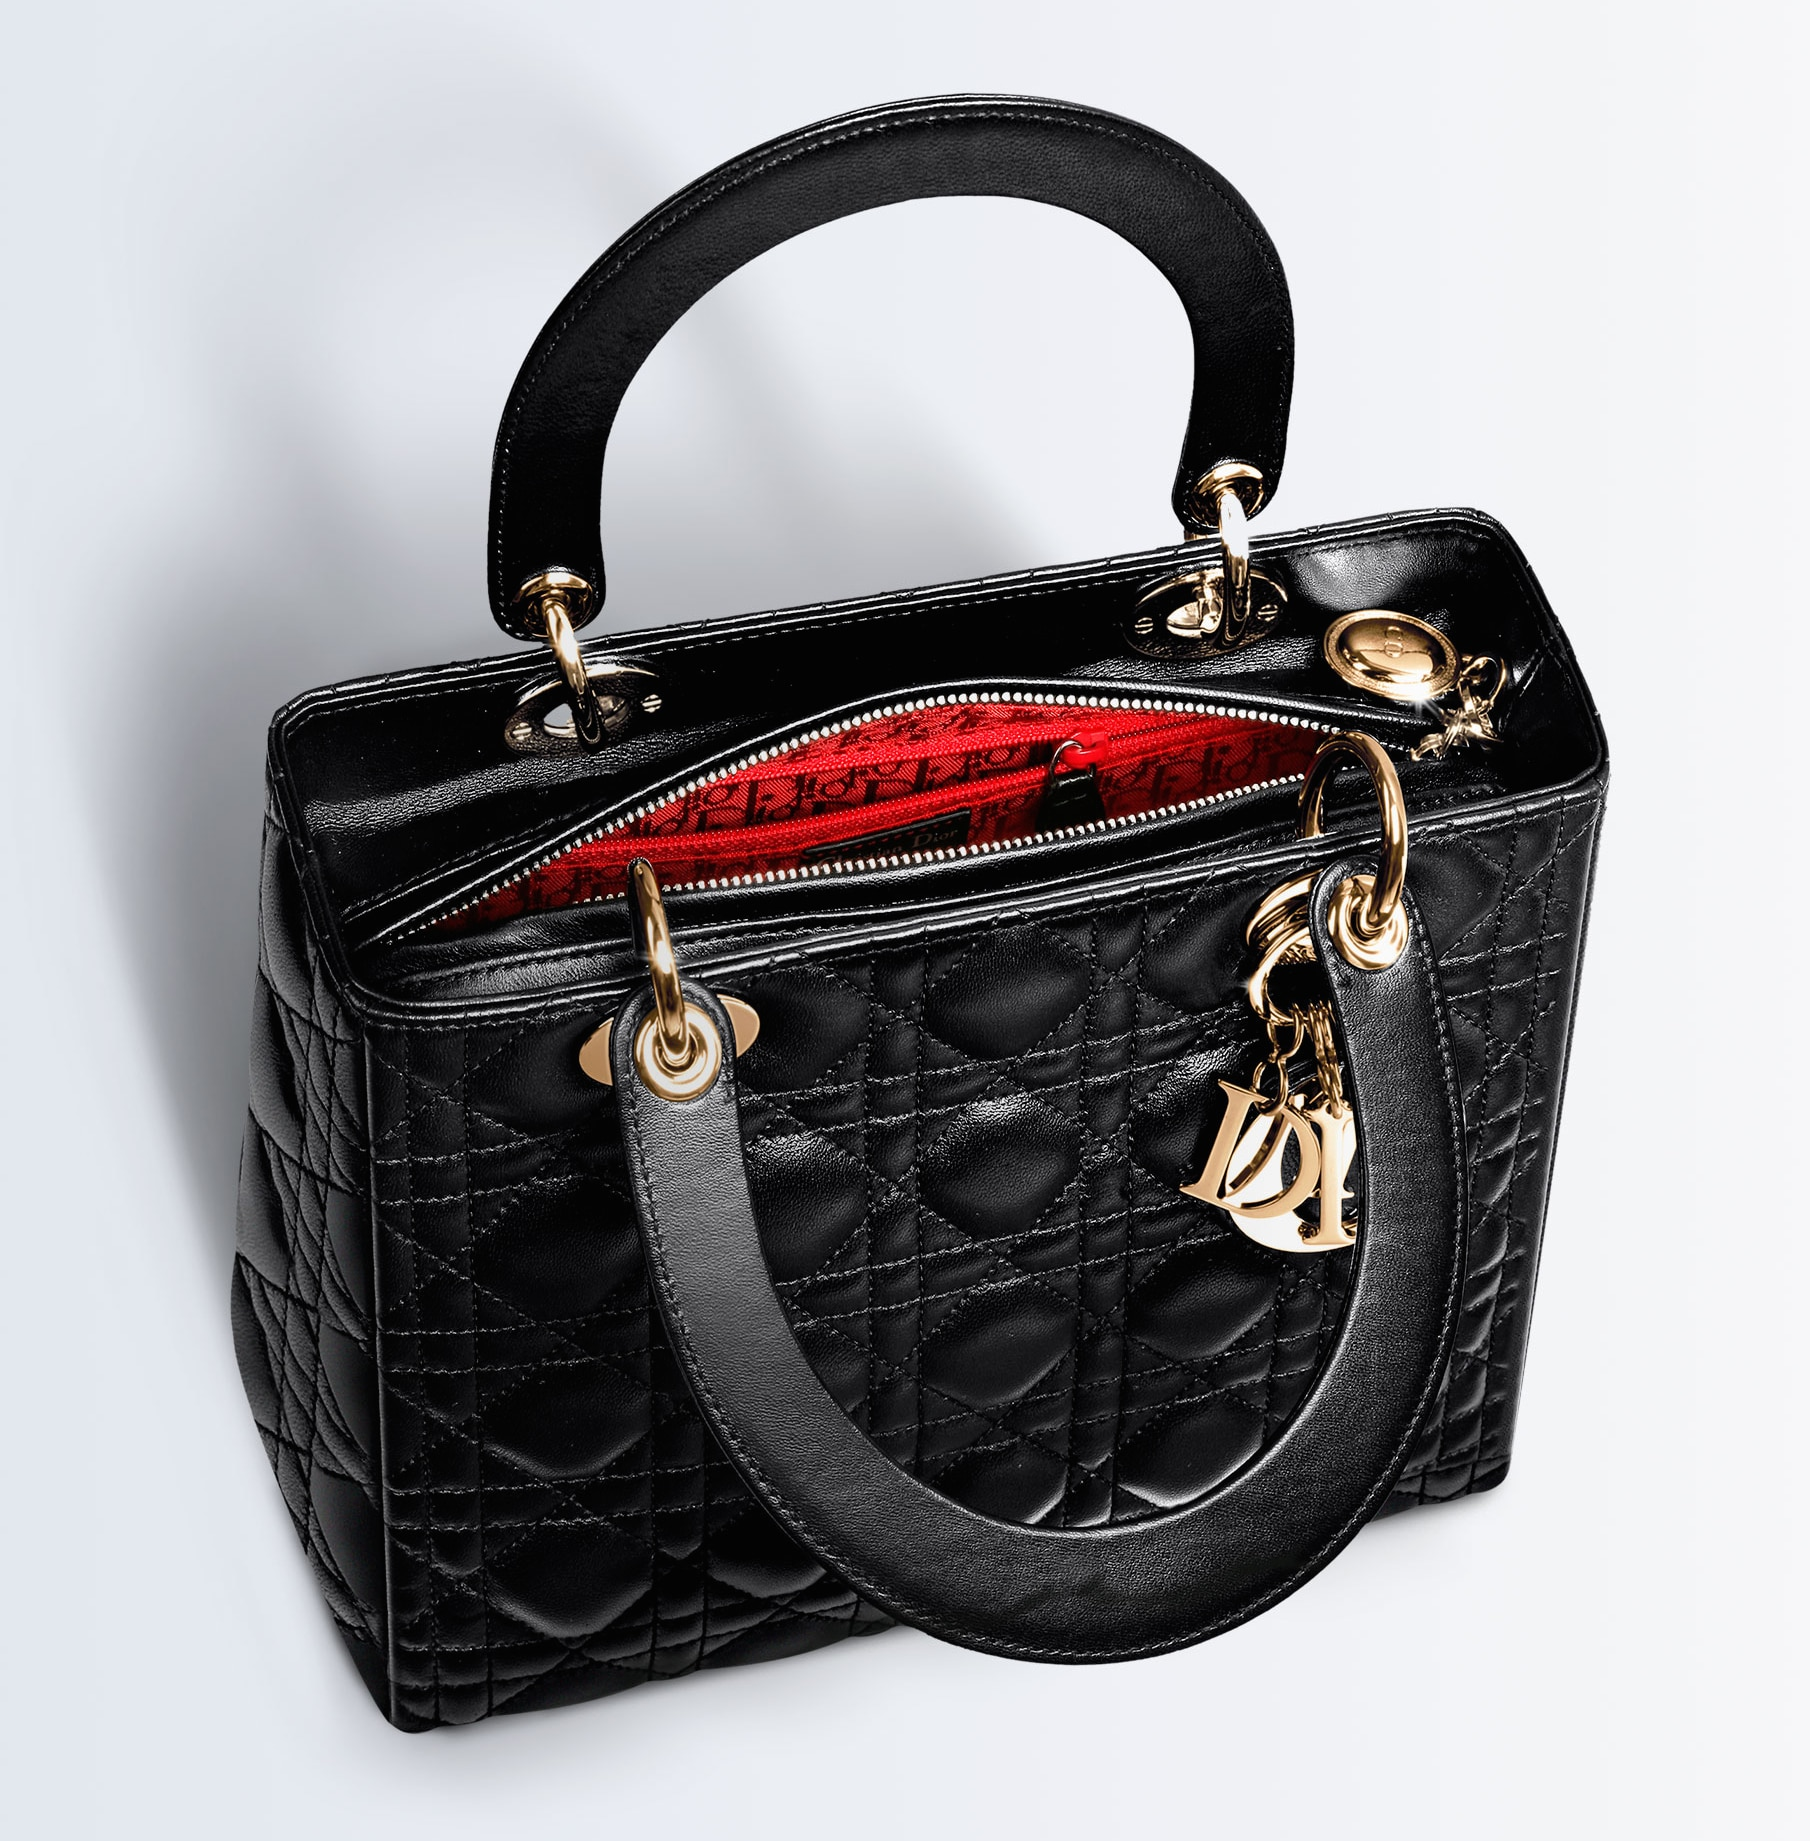 Lady Dior Bag Reference Guide  05f8dc2c87eca